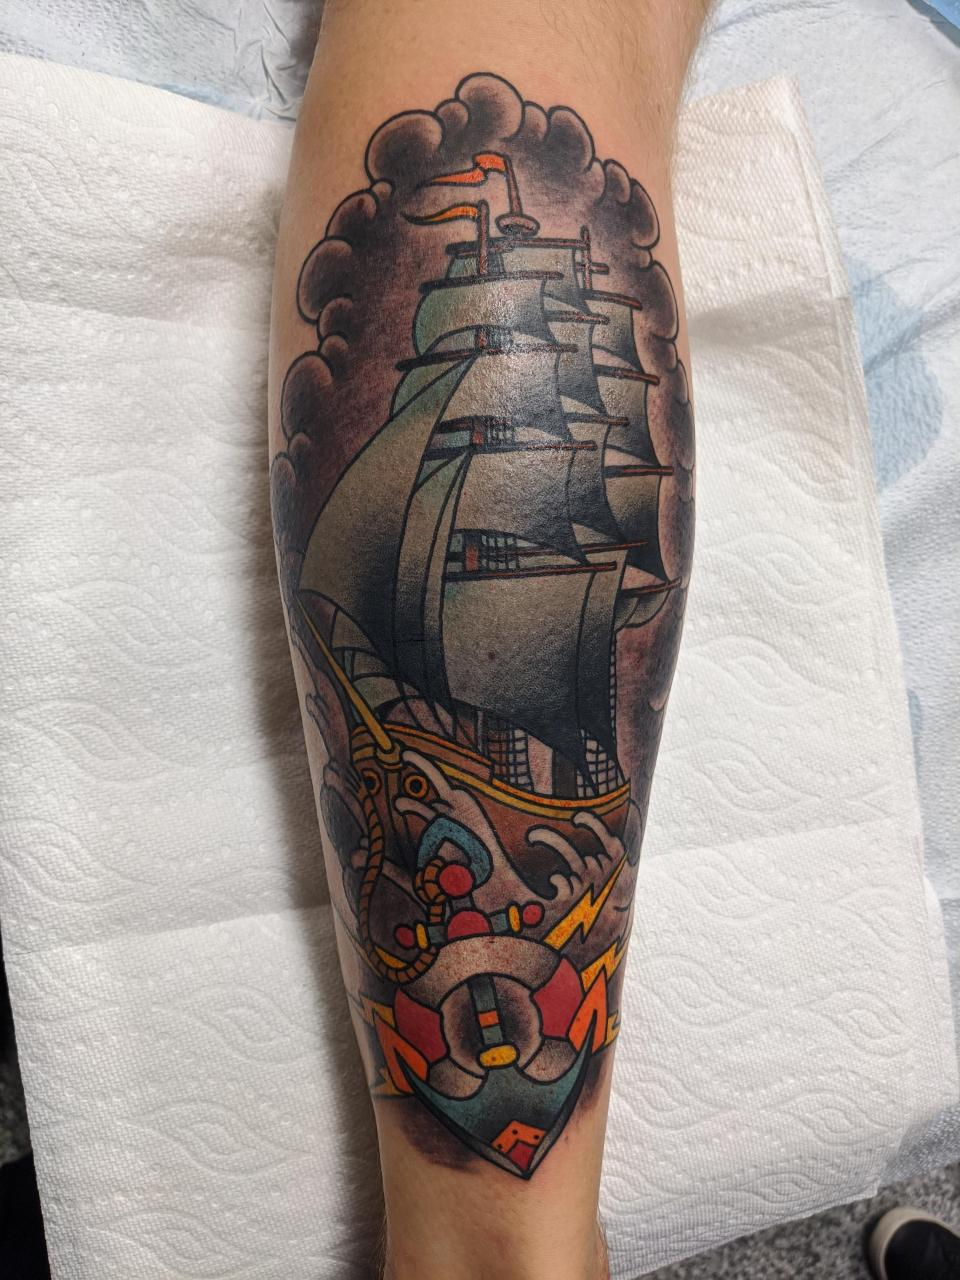 Any love for neo-traditional? Here's my bangin' leg piece, done by Rich James at John Street Tattoo in Hamilton, Ontario!